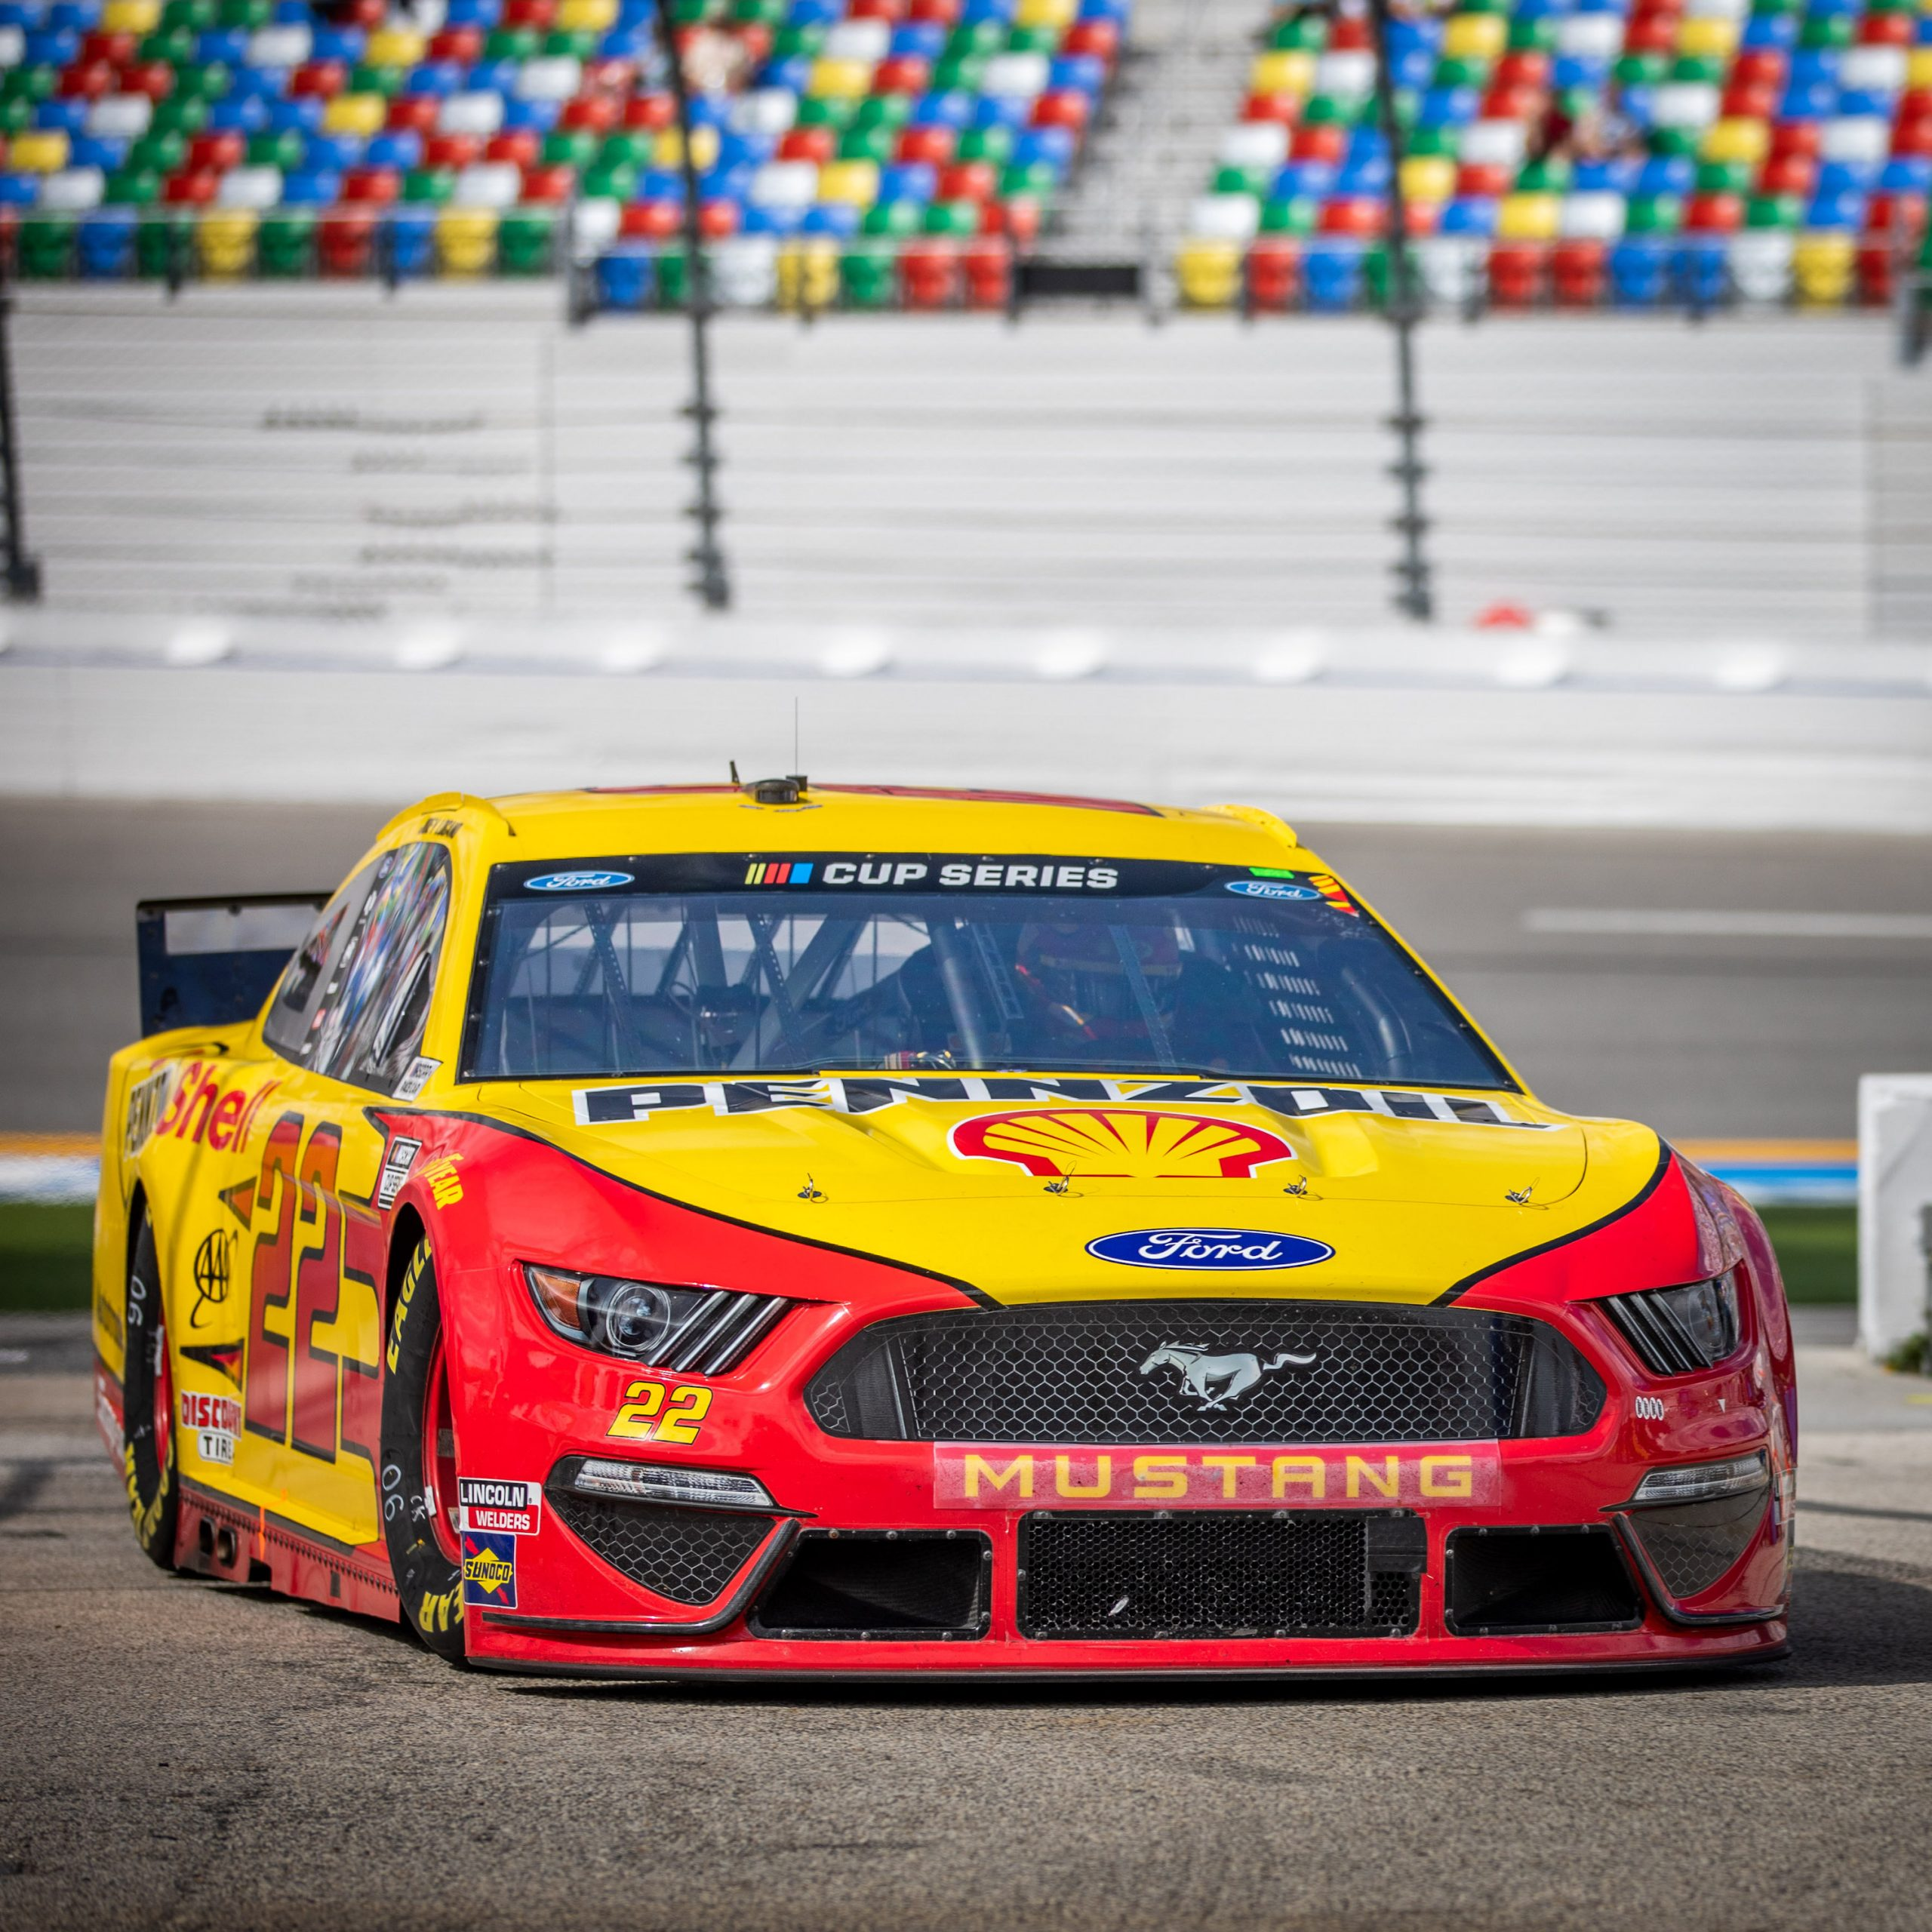 Daytona Race Car Mustang Pennzoil